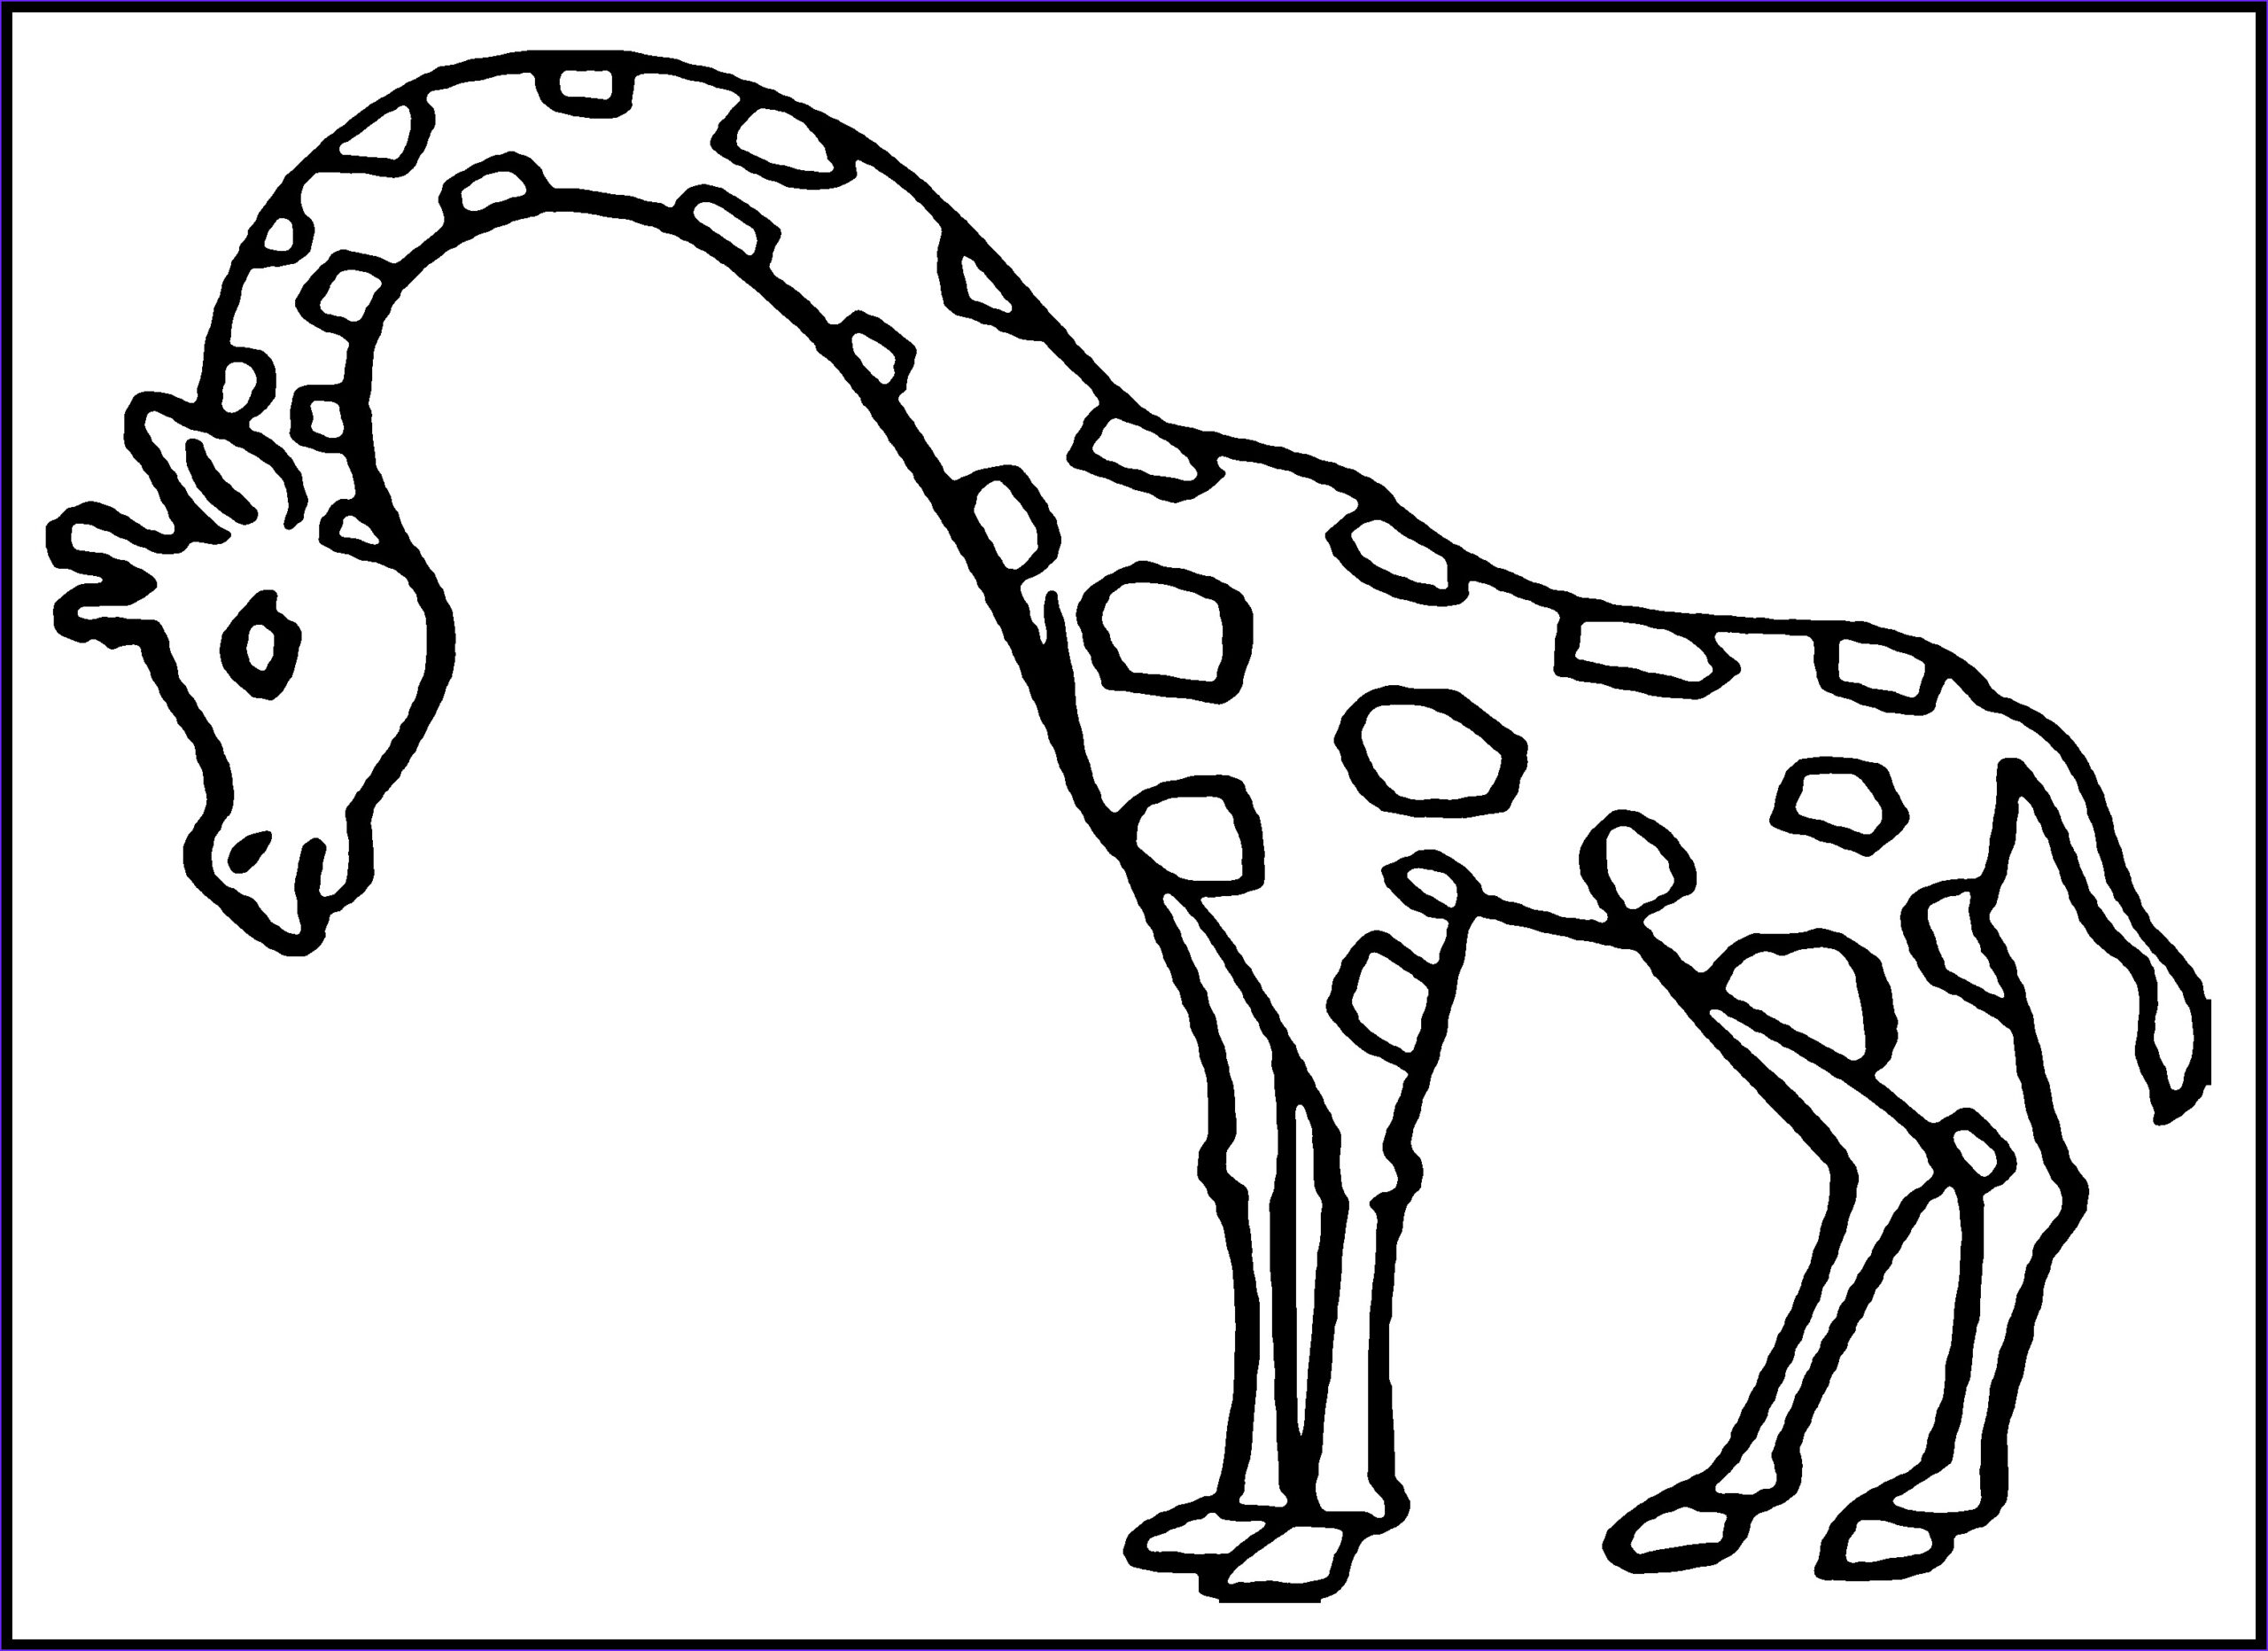 Giraffe Coloring Pictures Unique Collection Free Printable Giraffe Coloring Pages for Kids